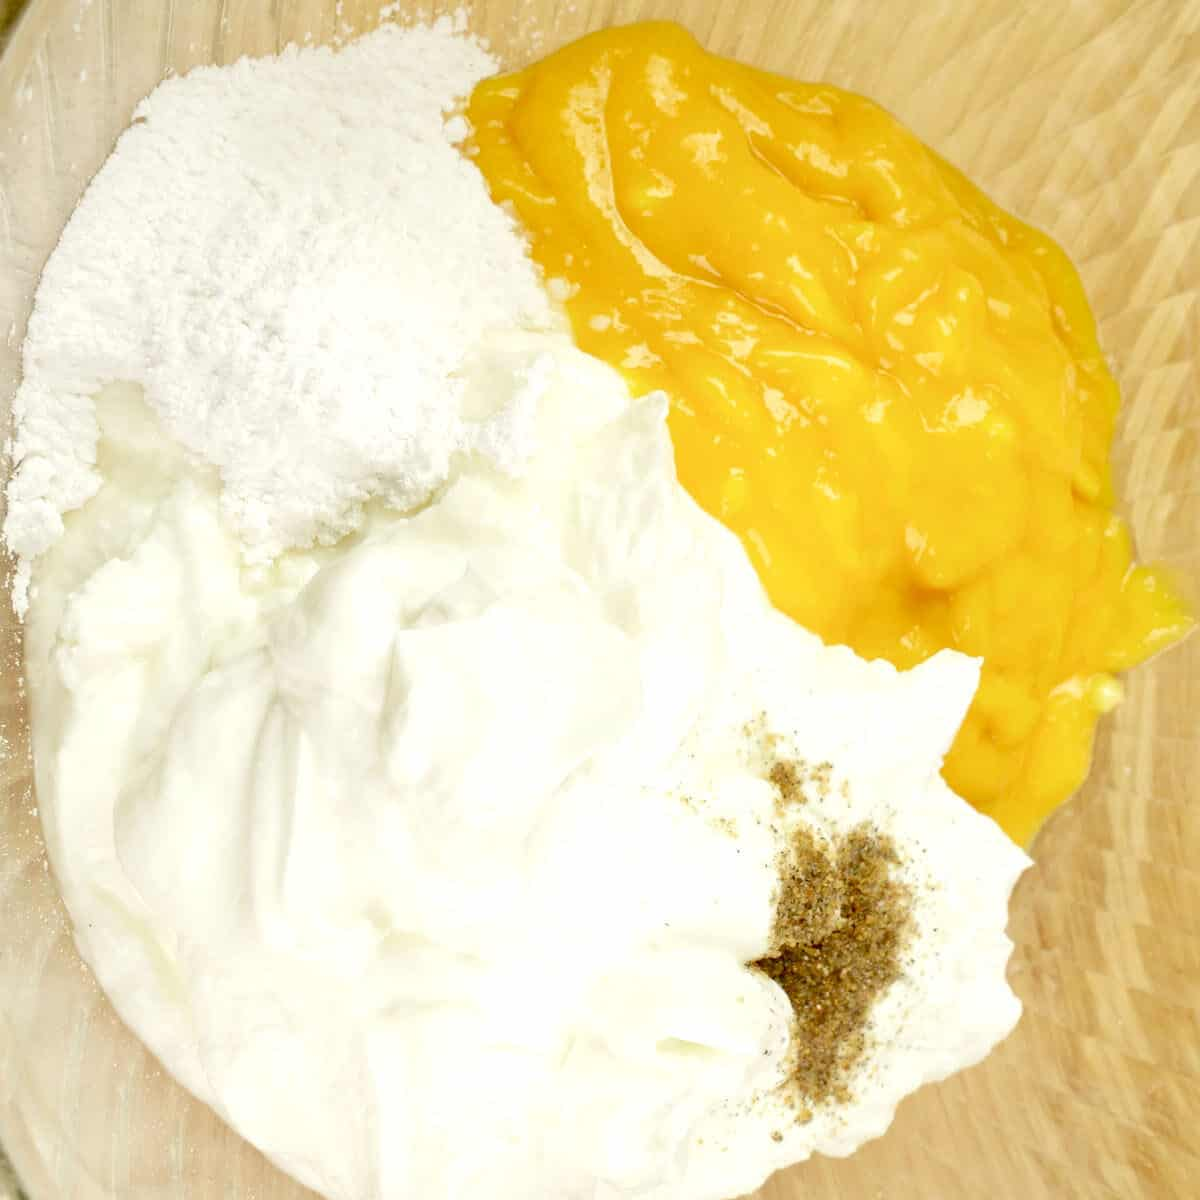 All the ingredients for mango fruit custard in a bowl, ready for mixing together.